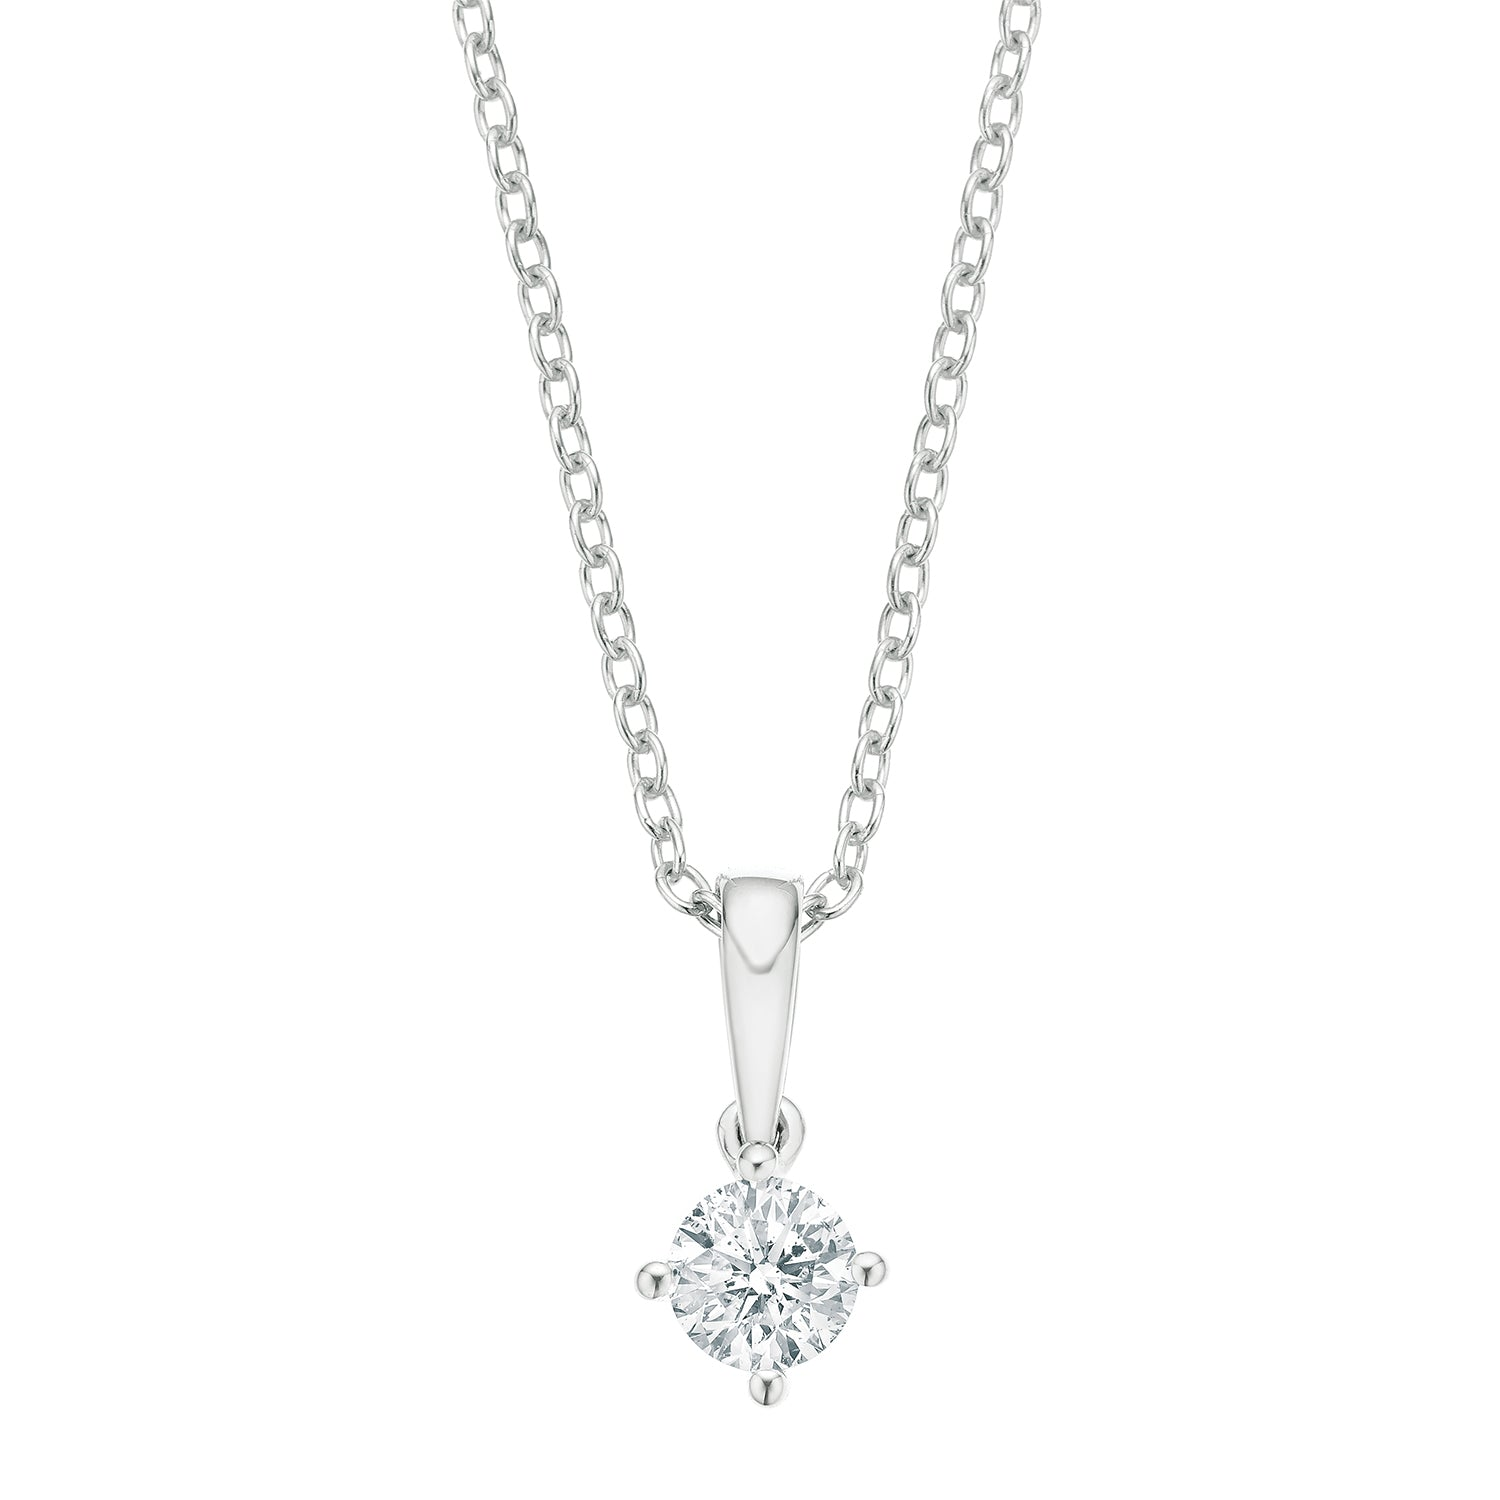 Promise 18ct White Gold Round Brilliant Cut with 1/2 CARAT of Diamond Pendant